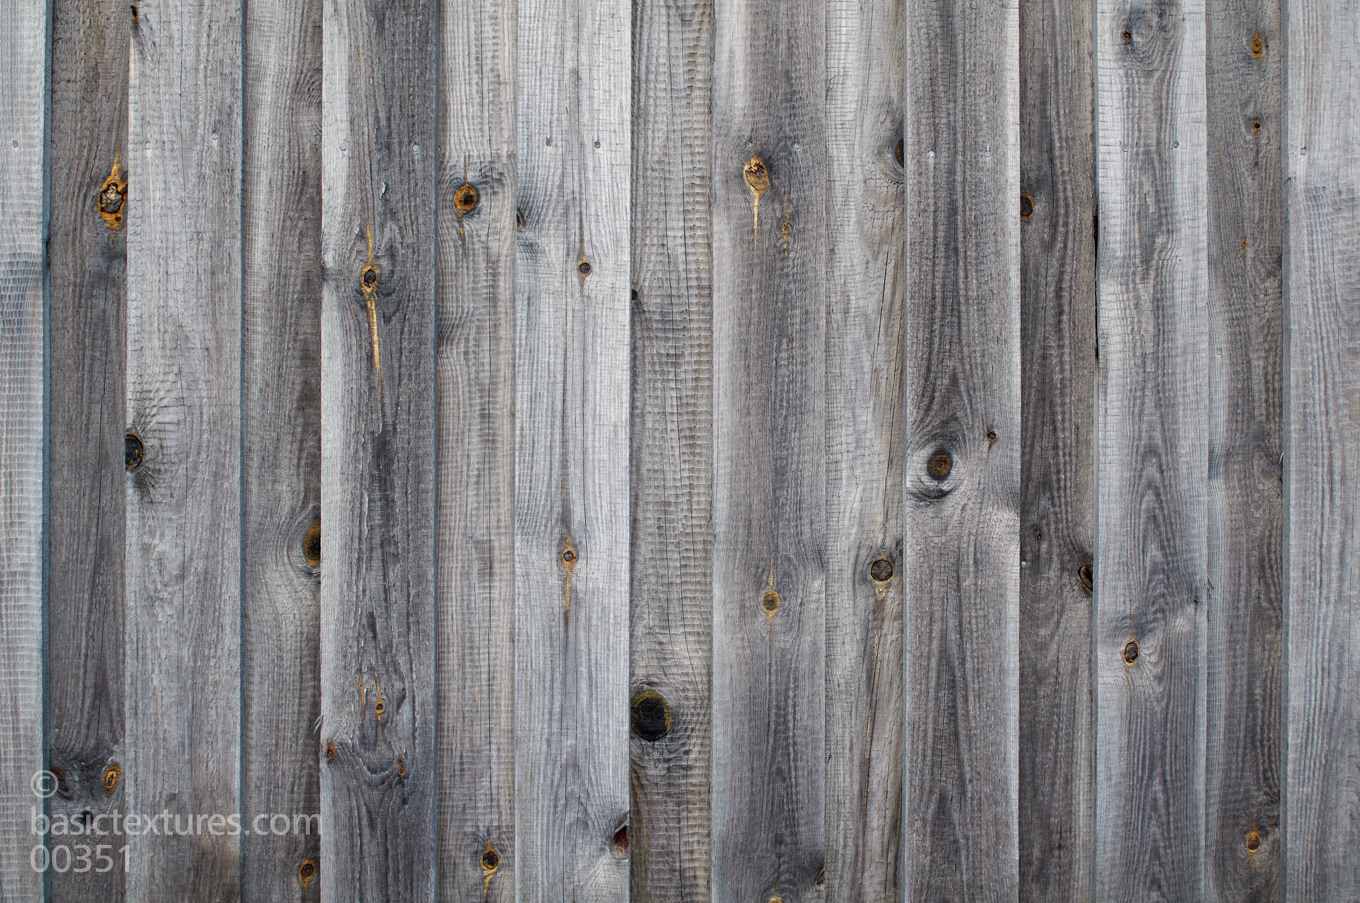 Wood Planks Wall raw weathered gray 00351 images for textures 1360x903